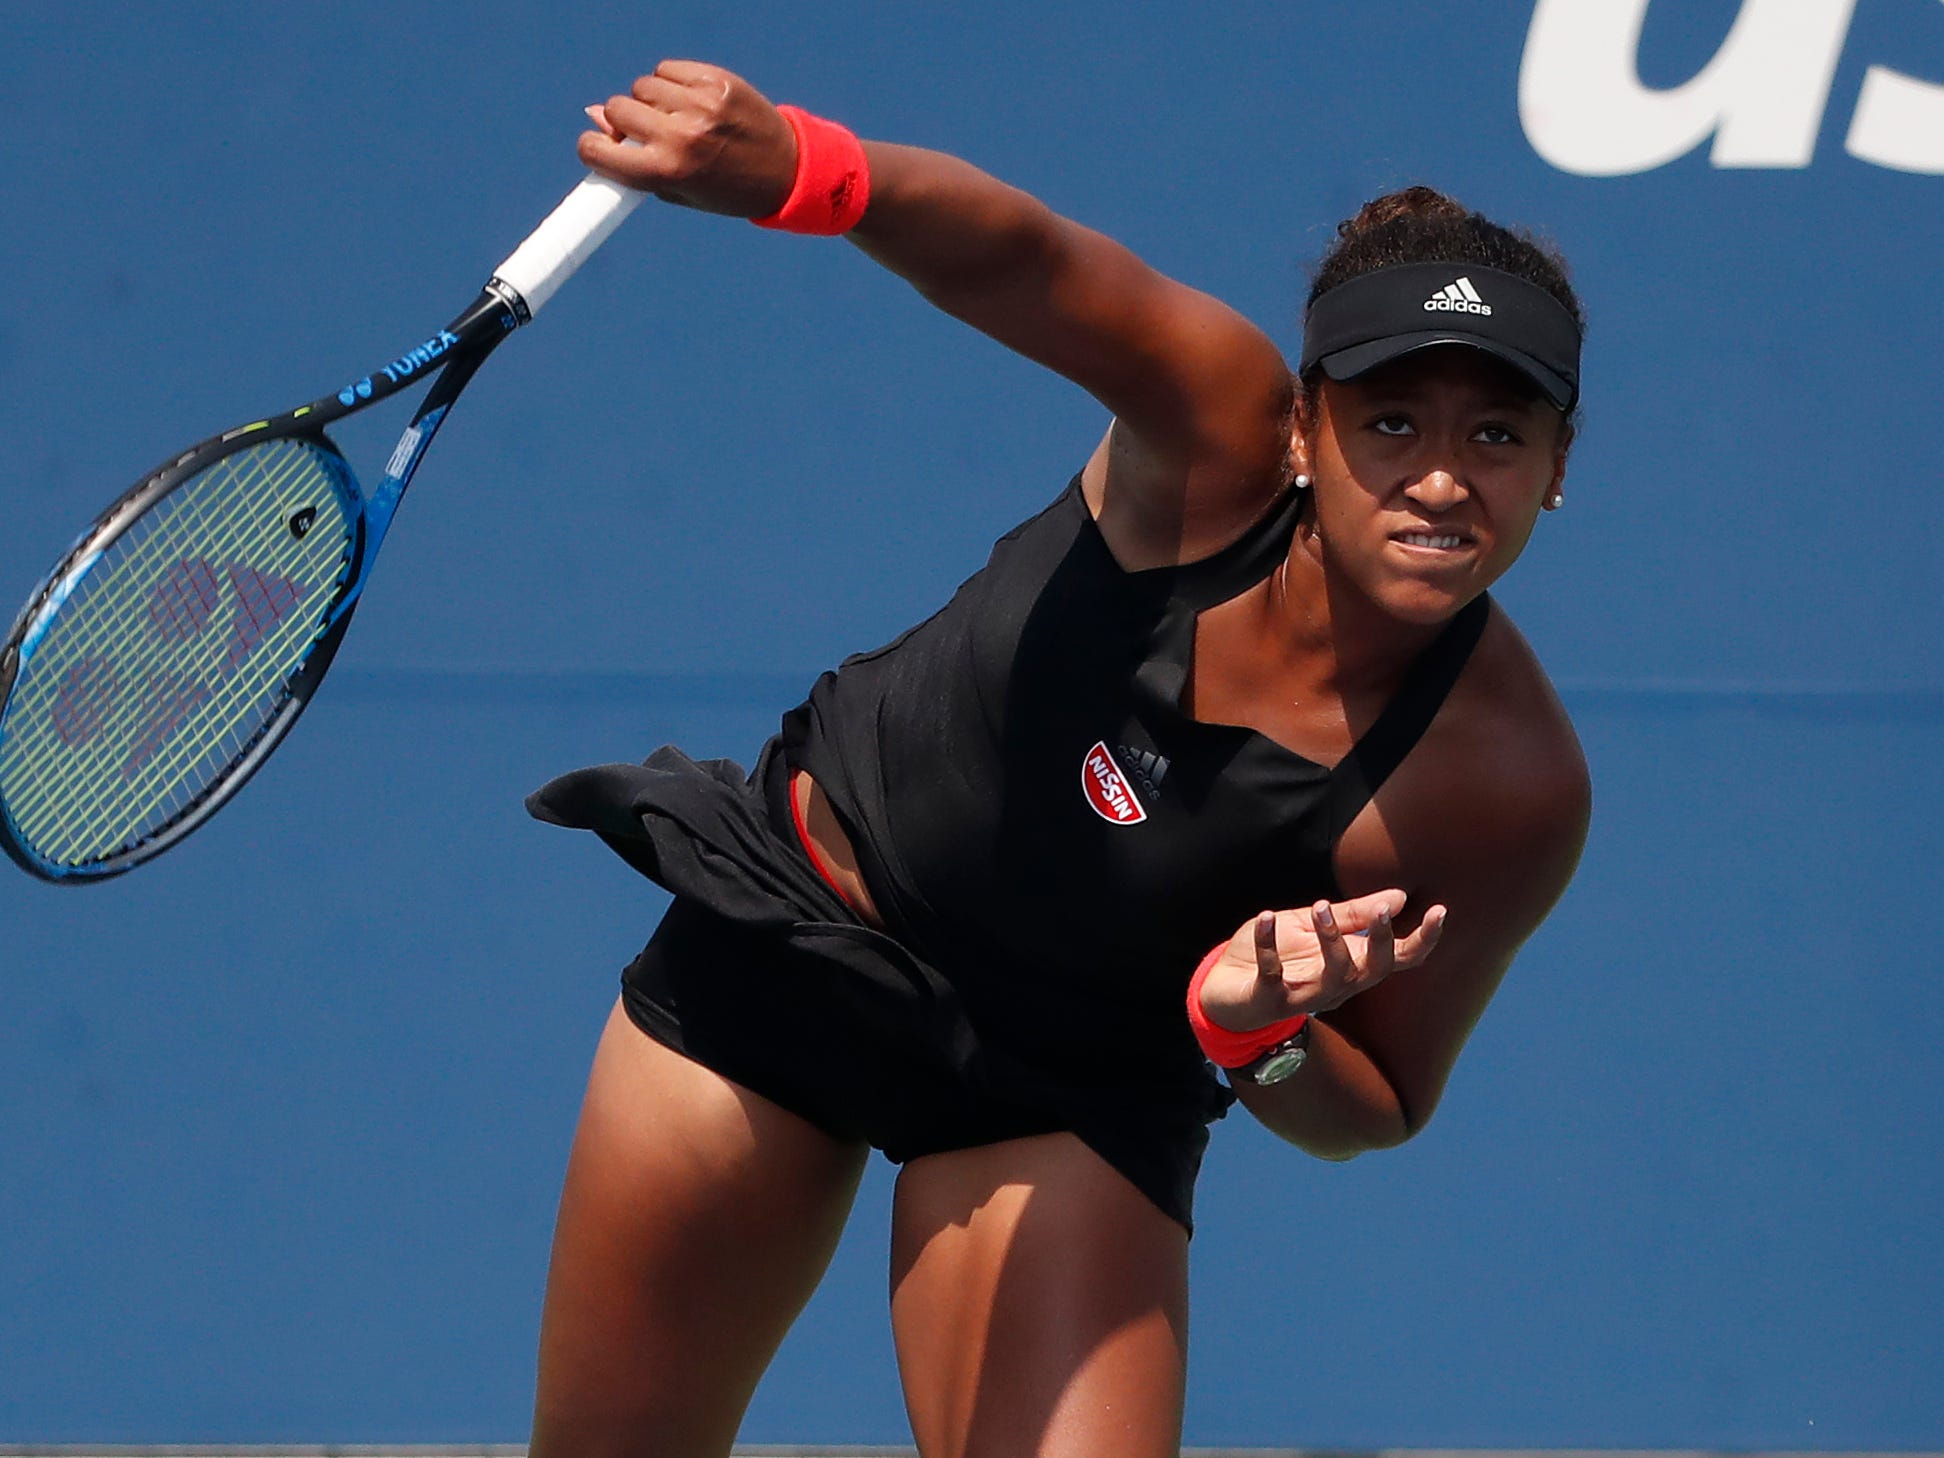 Naomi Osaka of Japan serves against Laura Siegemund of Germany.